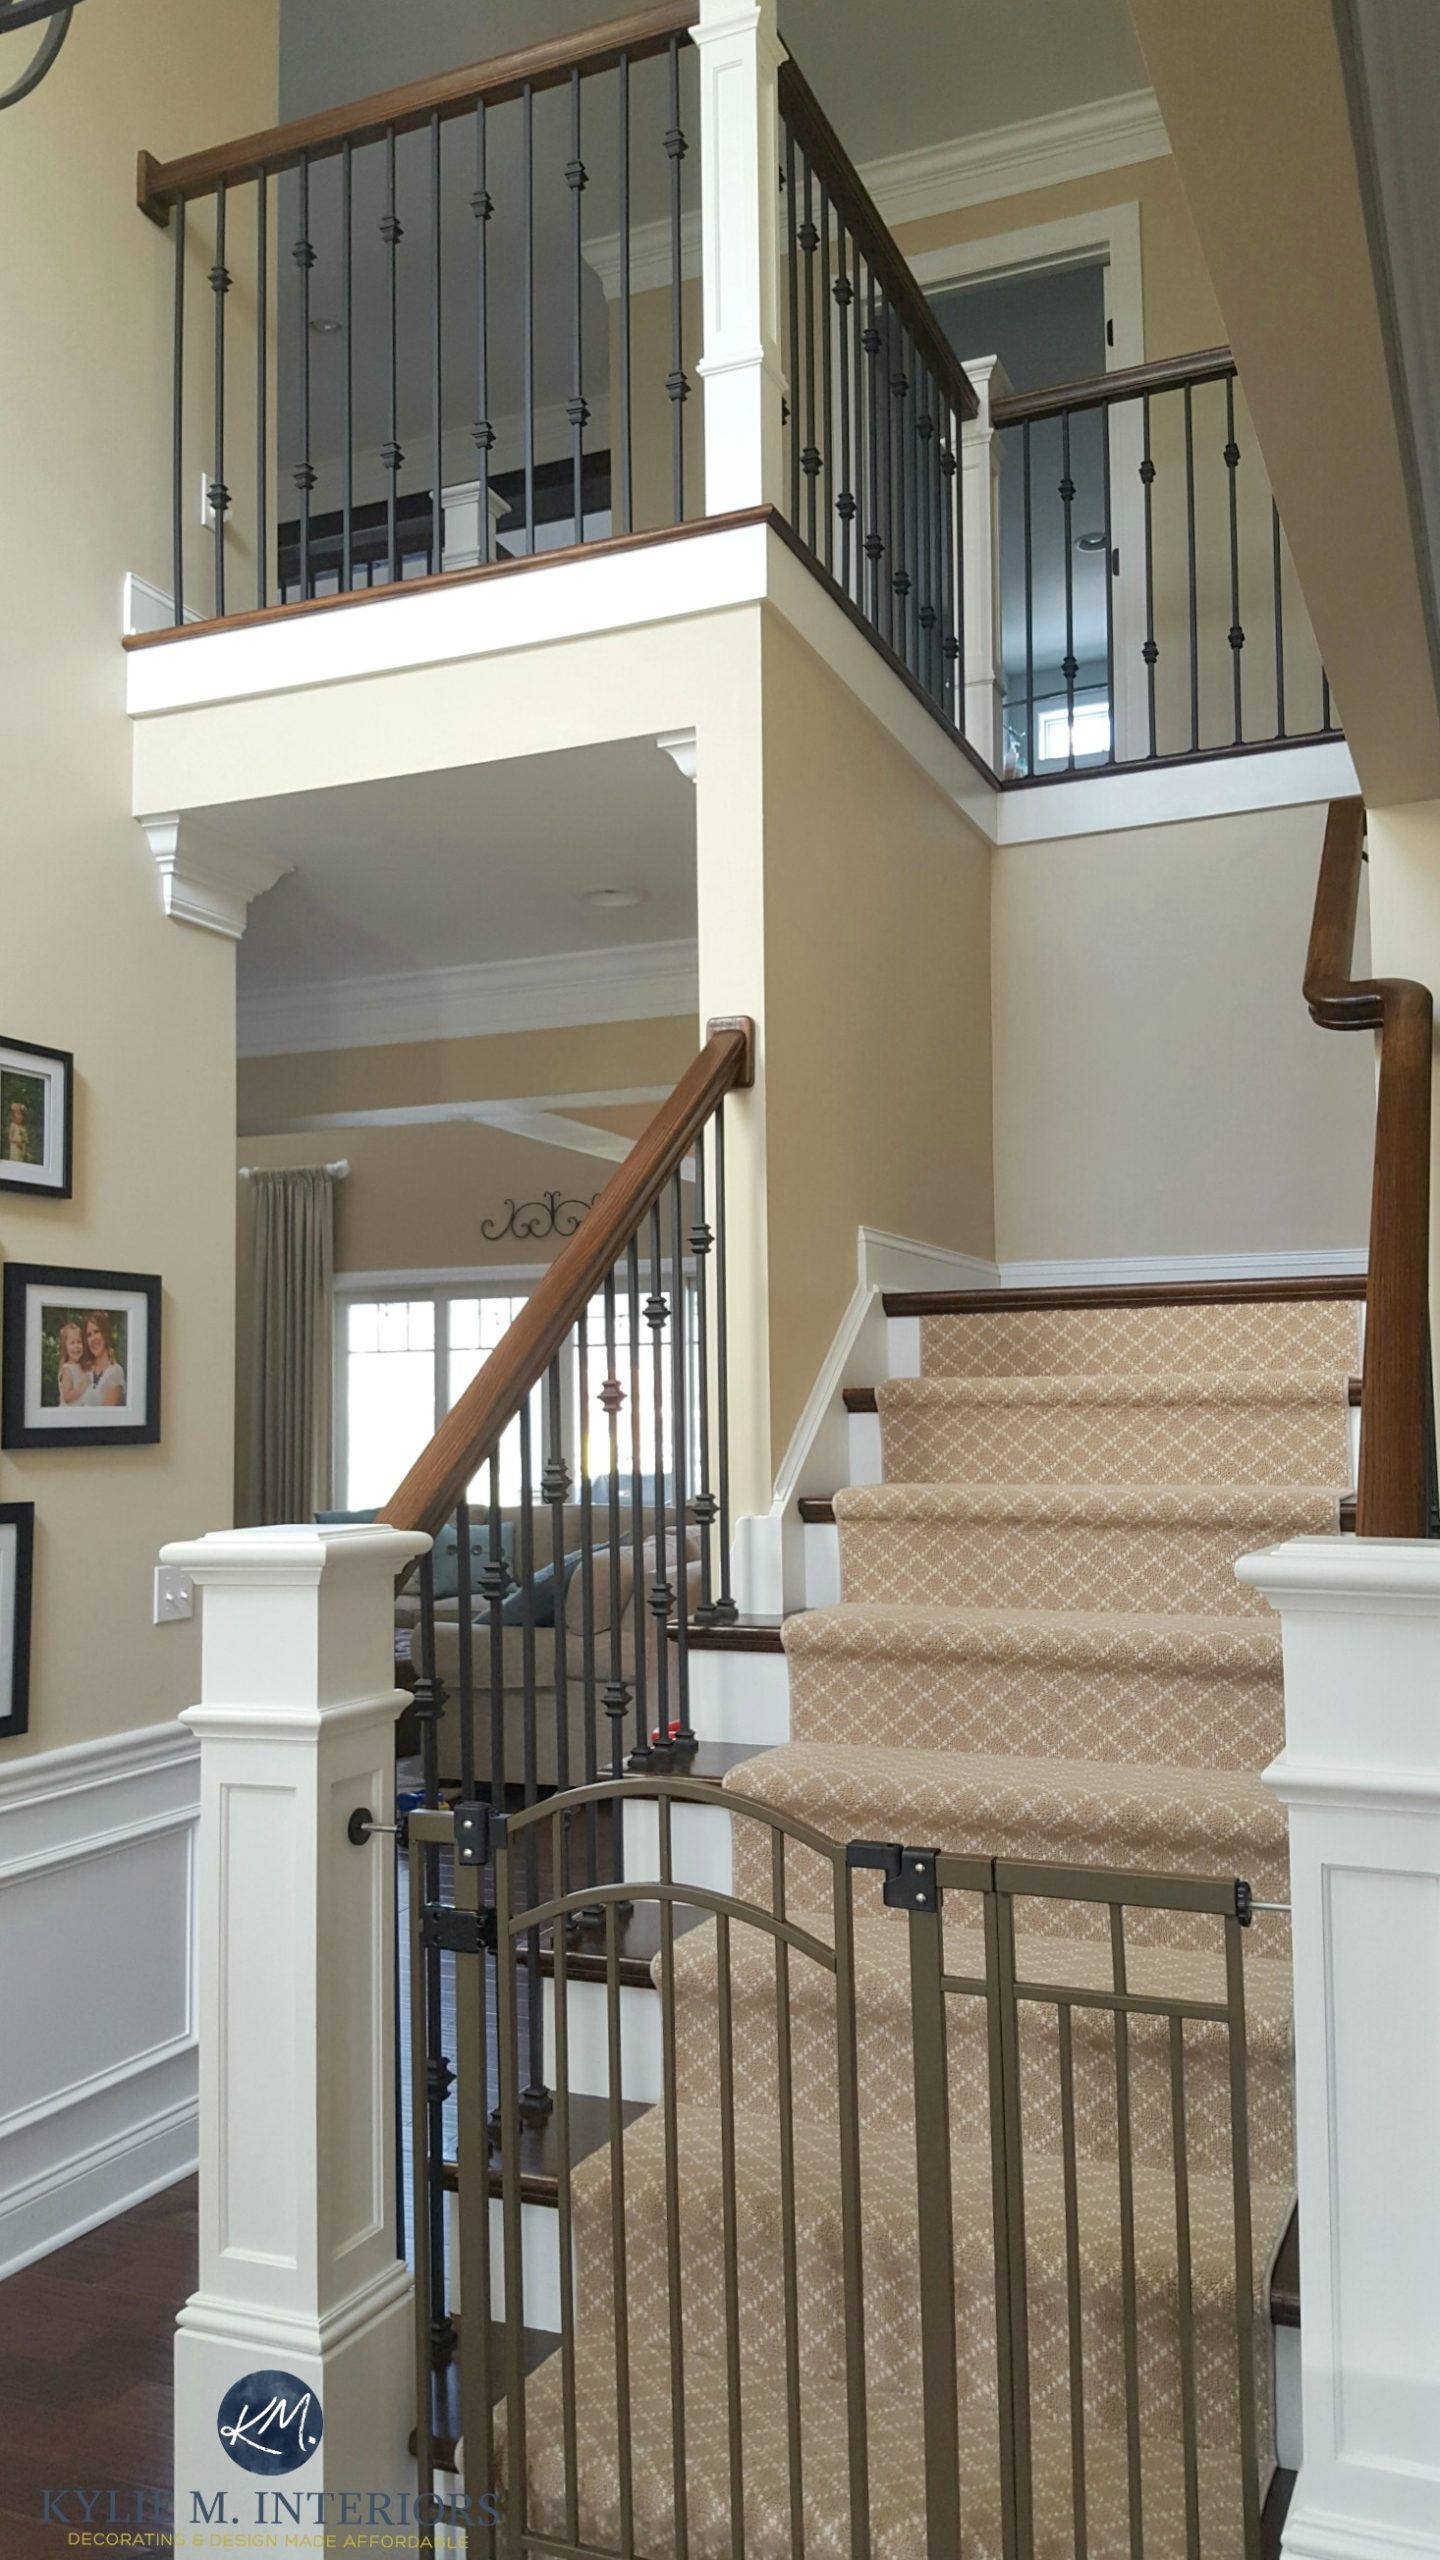 Sherwin Williams Kilim Beige In Stairwell And Hallway With